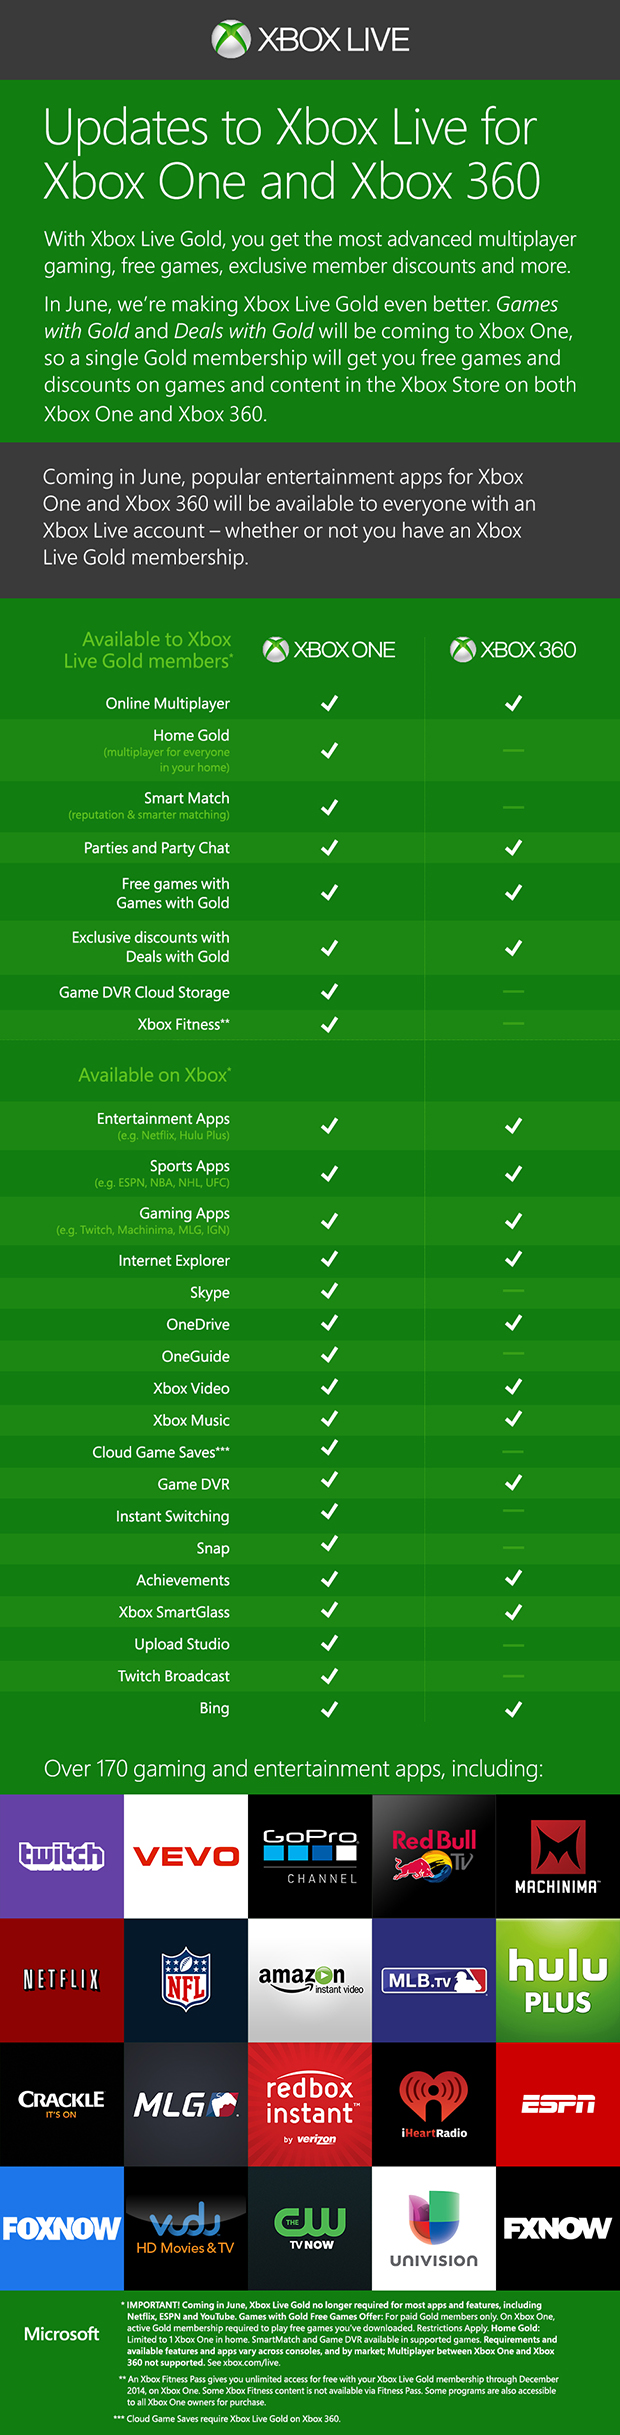 Microsoft to Drop Xbox Live Gold Requirement for Apps in June